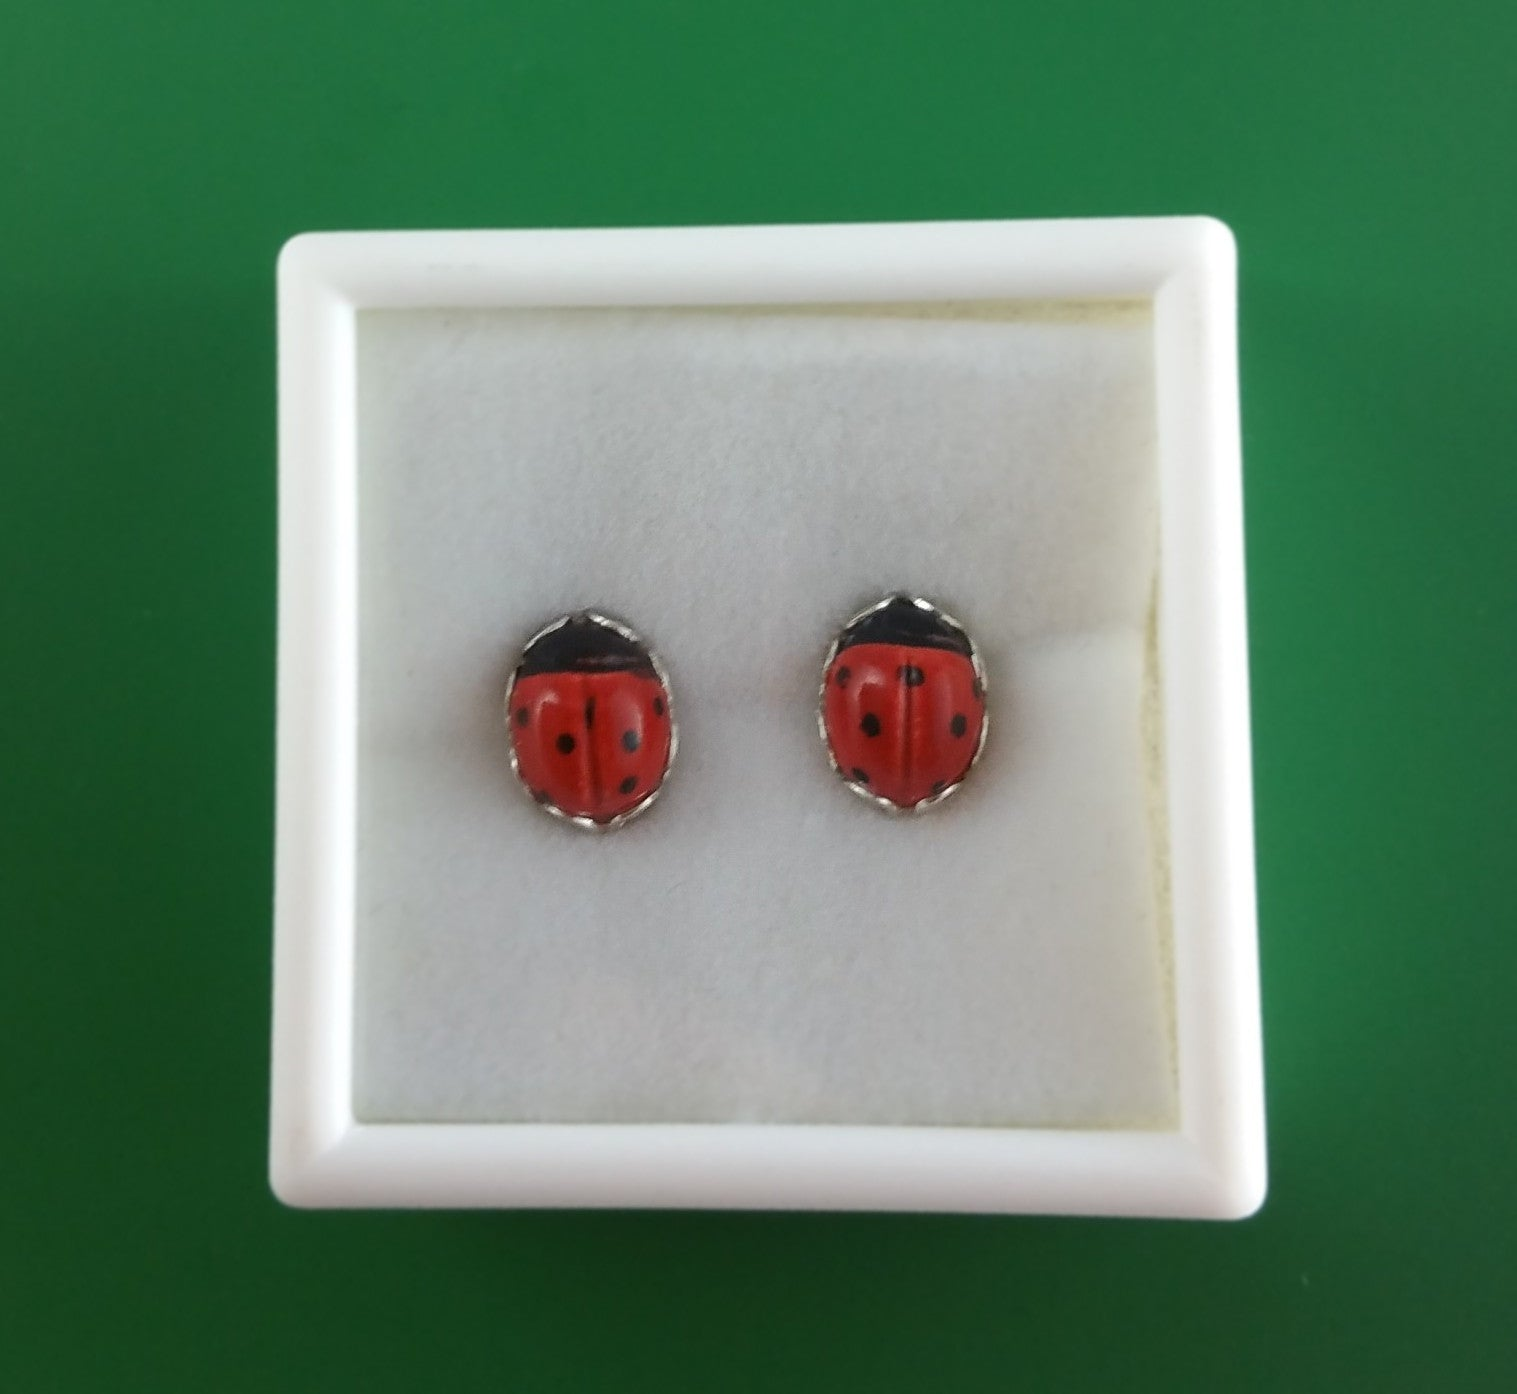 Medium porcelain ladybug stud earrings with silver by Joseph Chiang